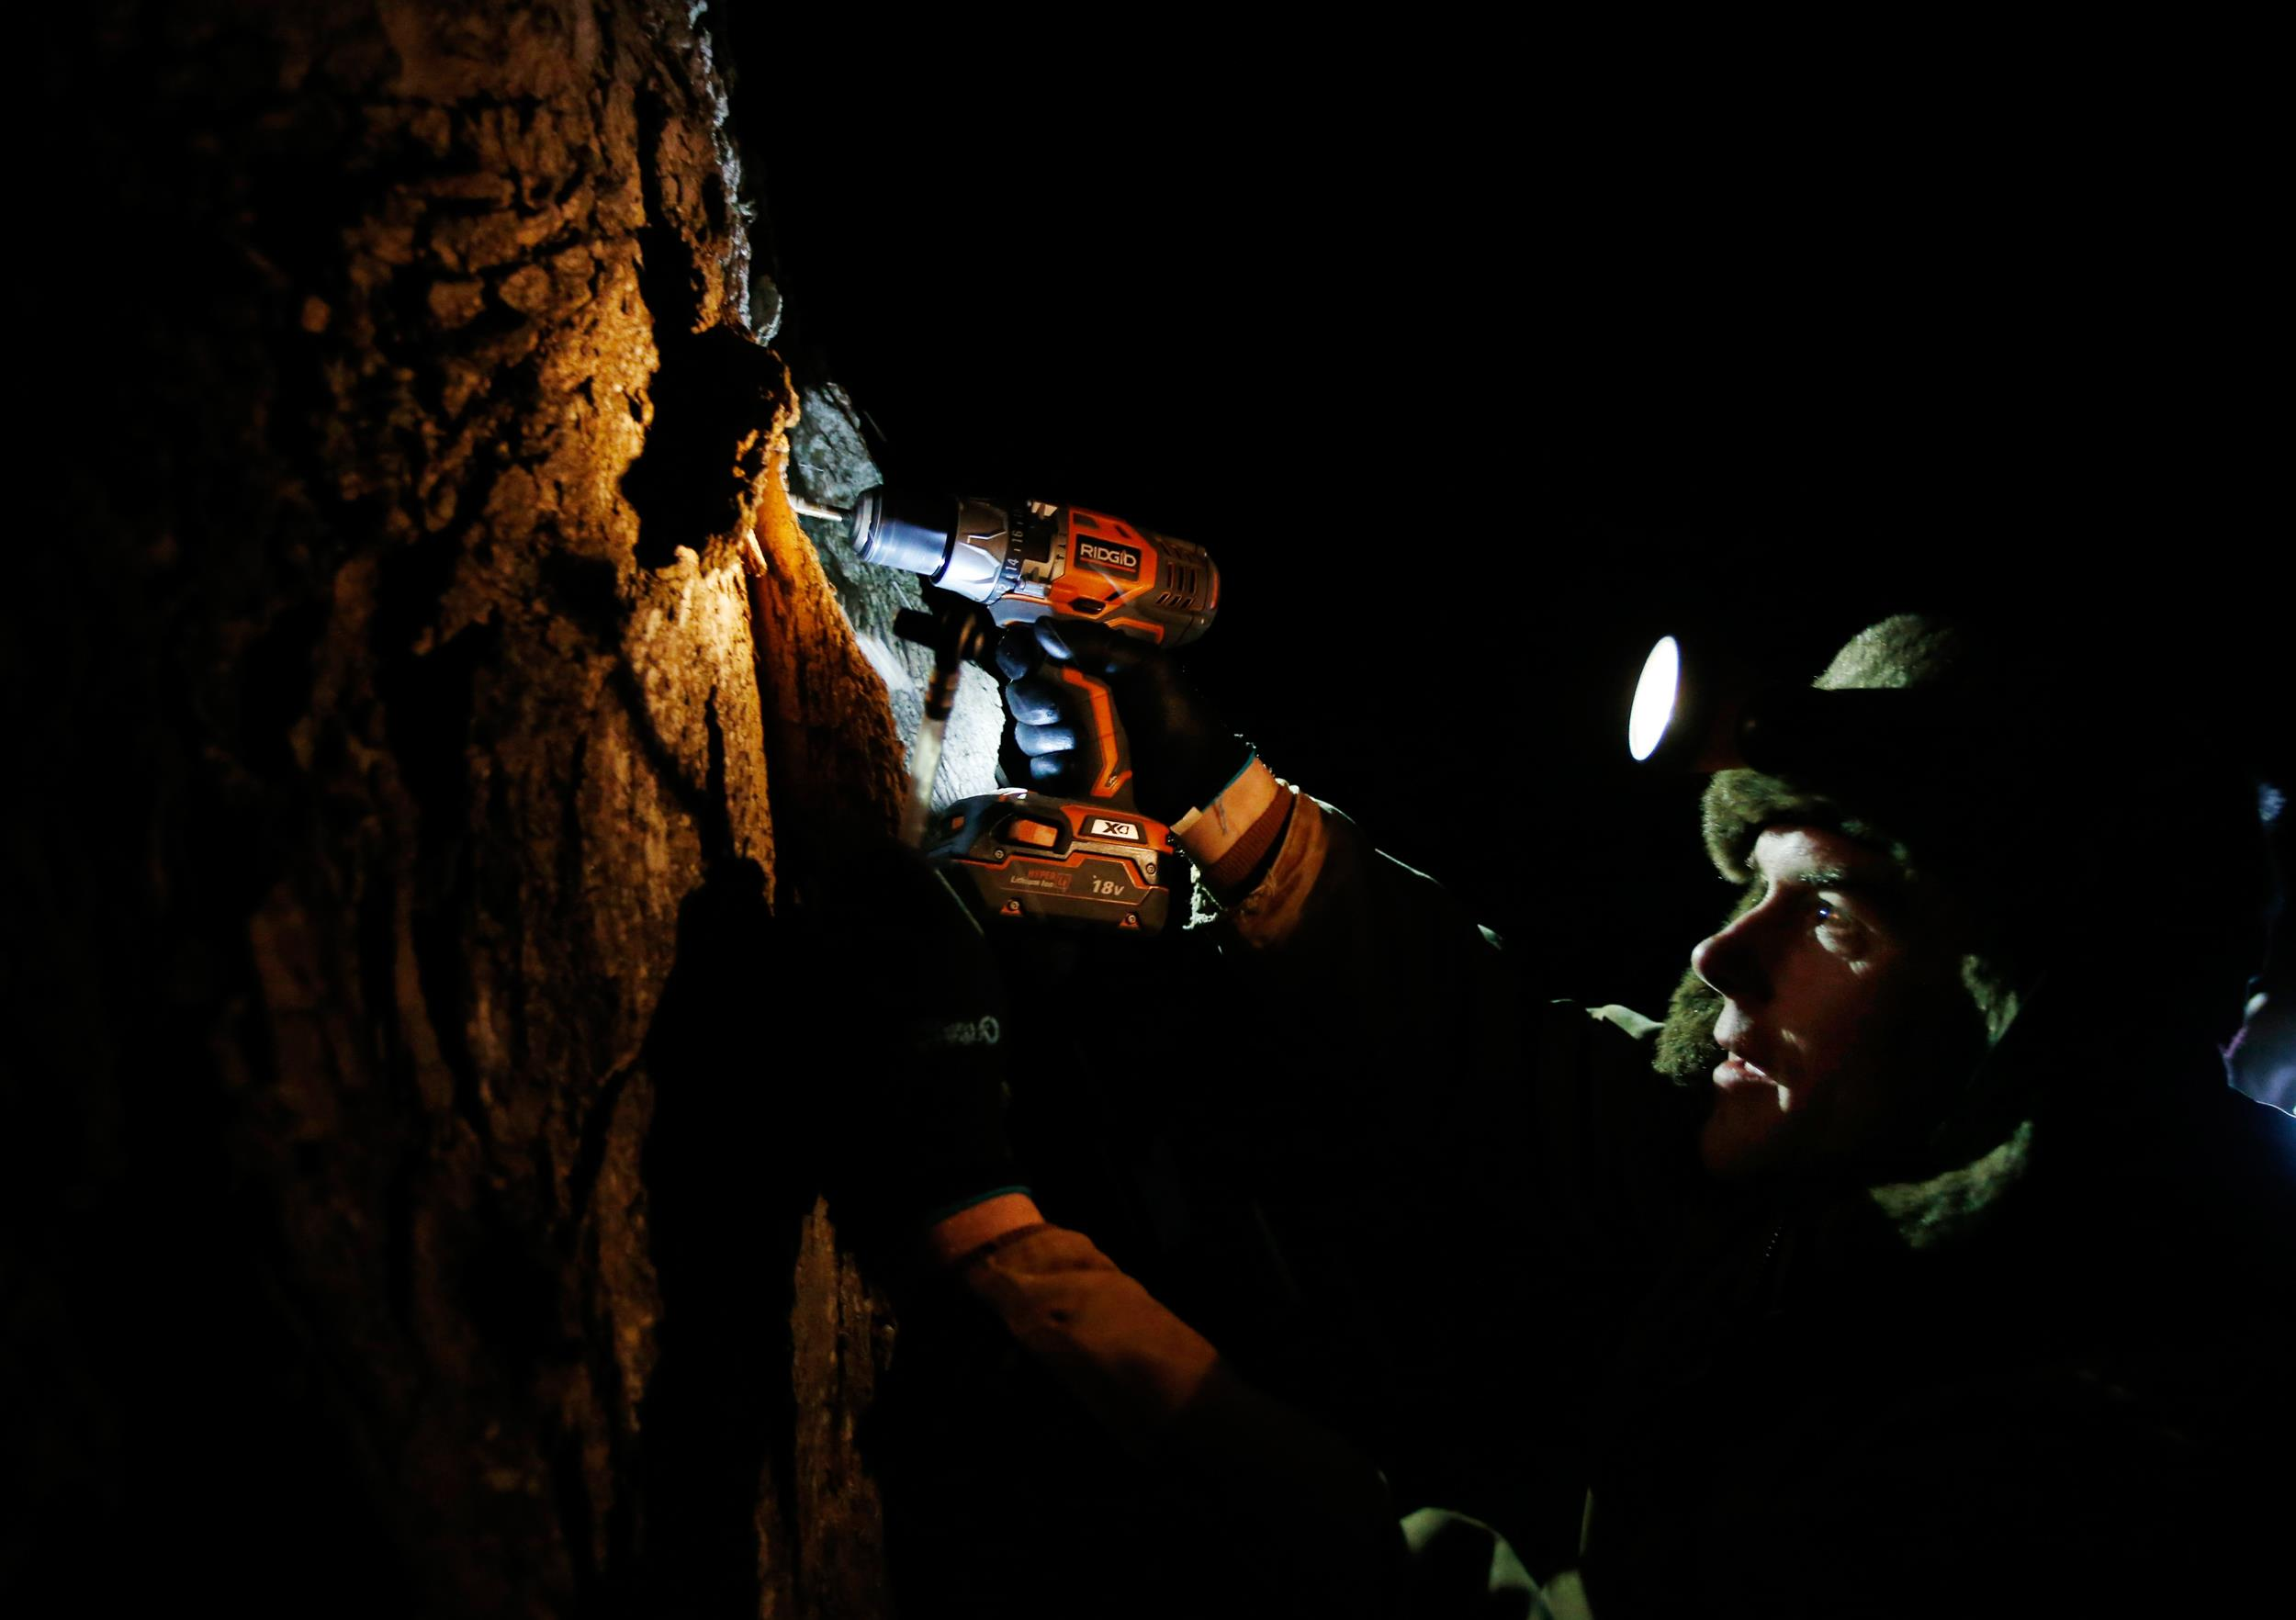 Image: Turtle Lane Maple farmer Paul Boulanger taps a maple tree by headlamp